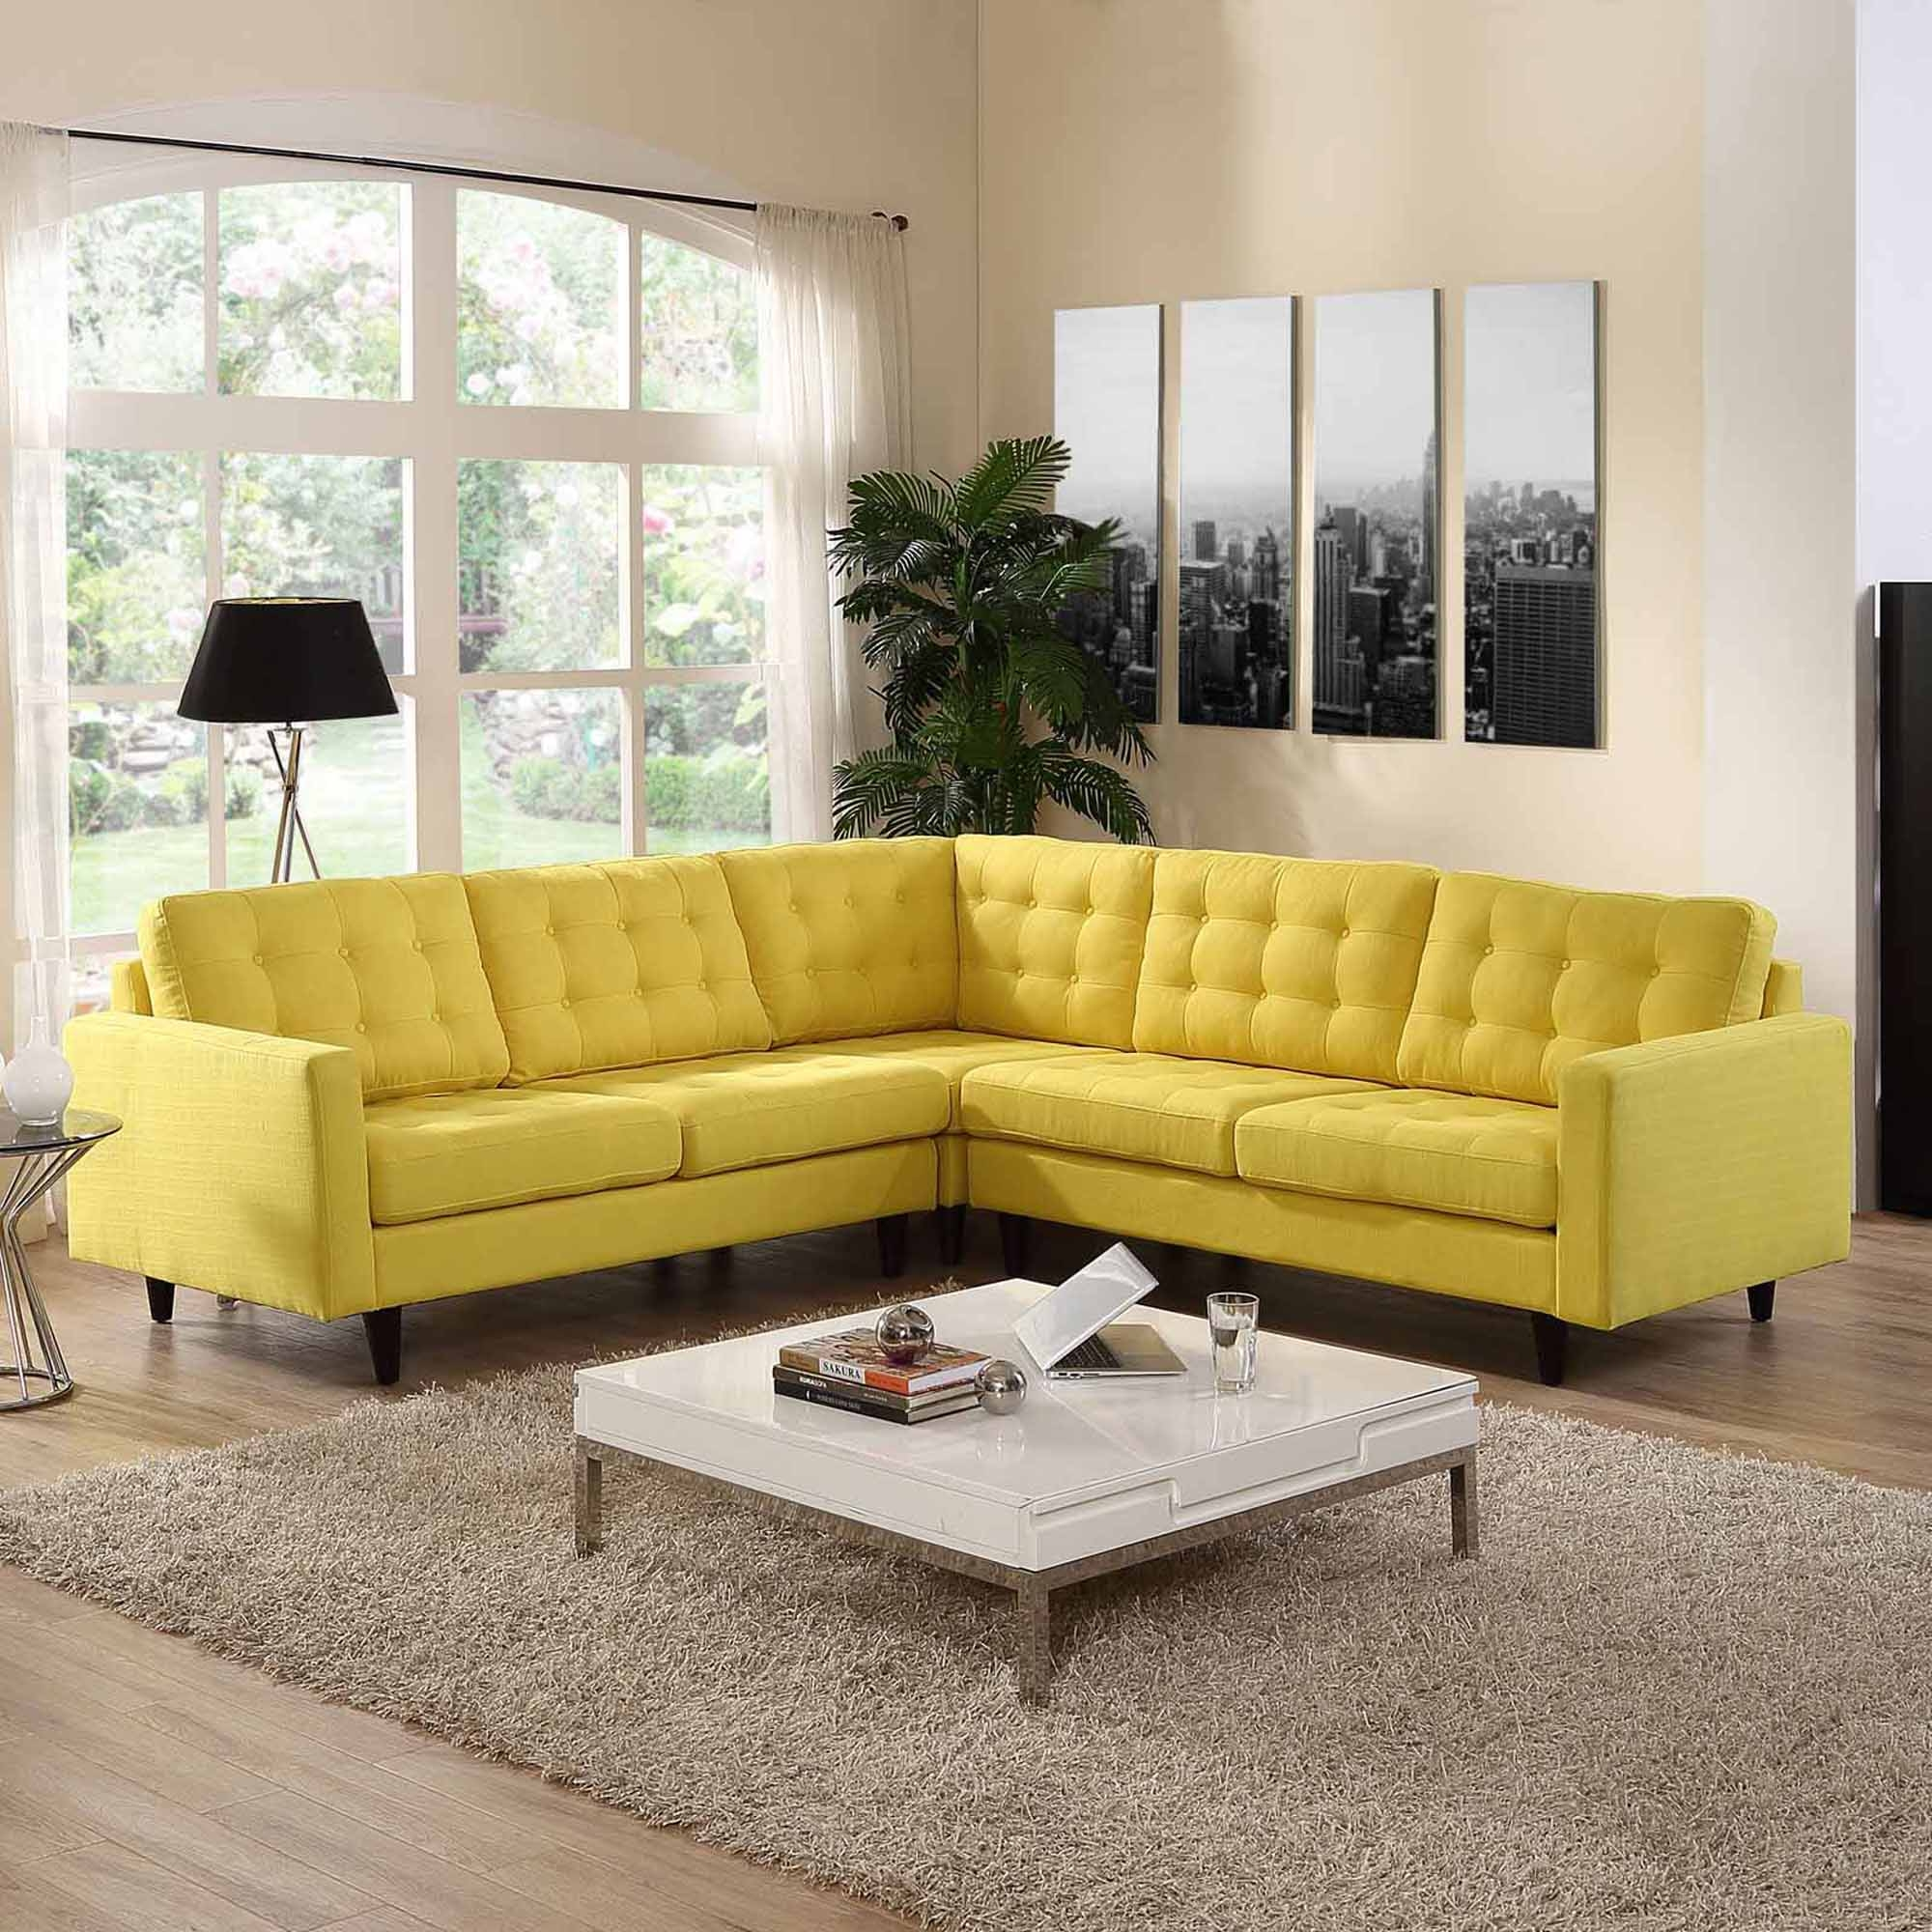 No Rooms Colorful Furniture: 12 Best Ideas Of Colorful Sectional Sofas